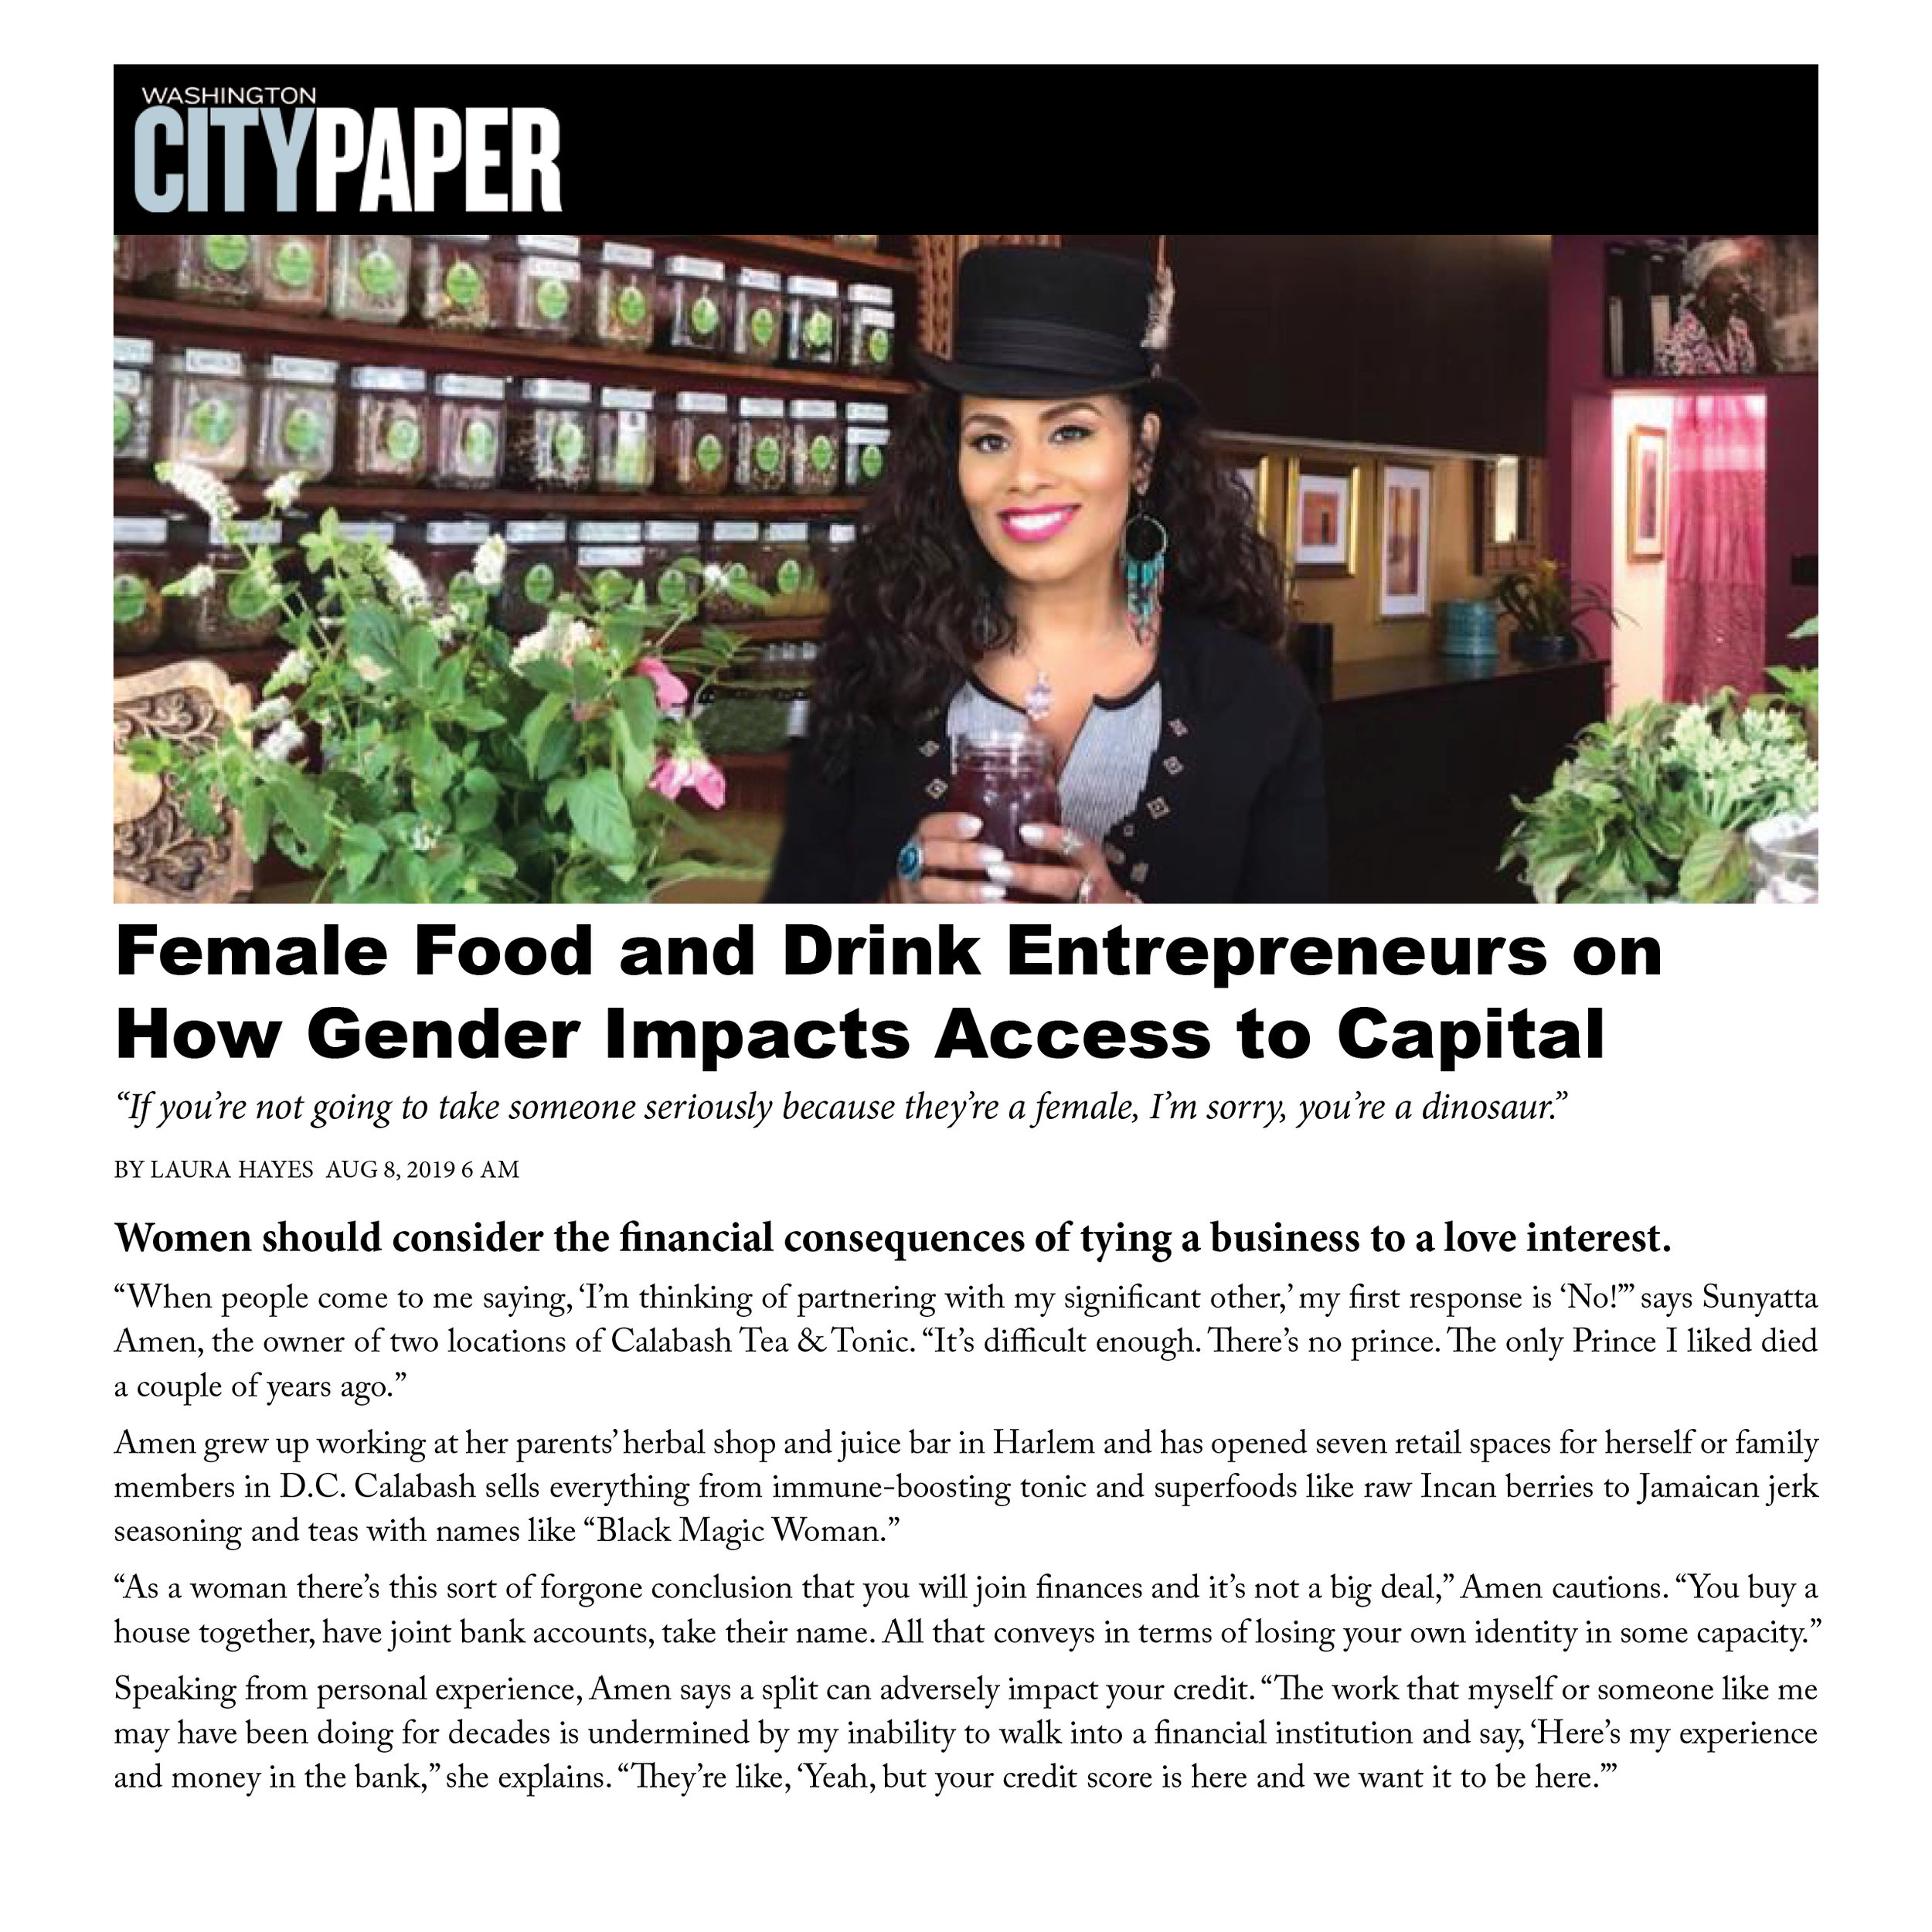 WASHINGTON CITY PAPER - Female Food and Drink Entrepreneurs on How Gender Impacts Access to Capital